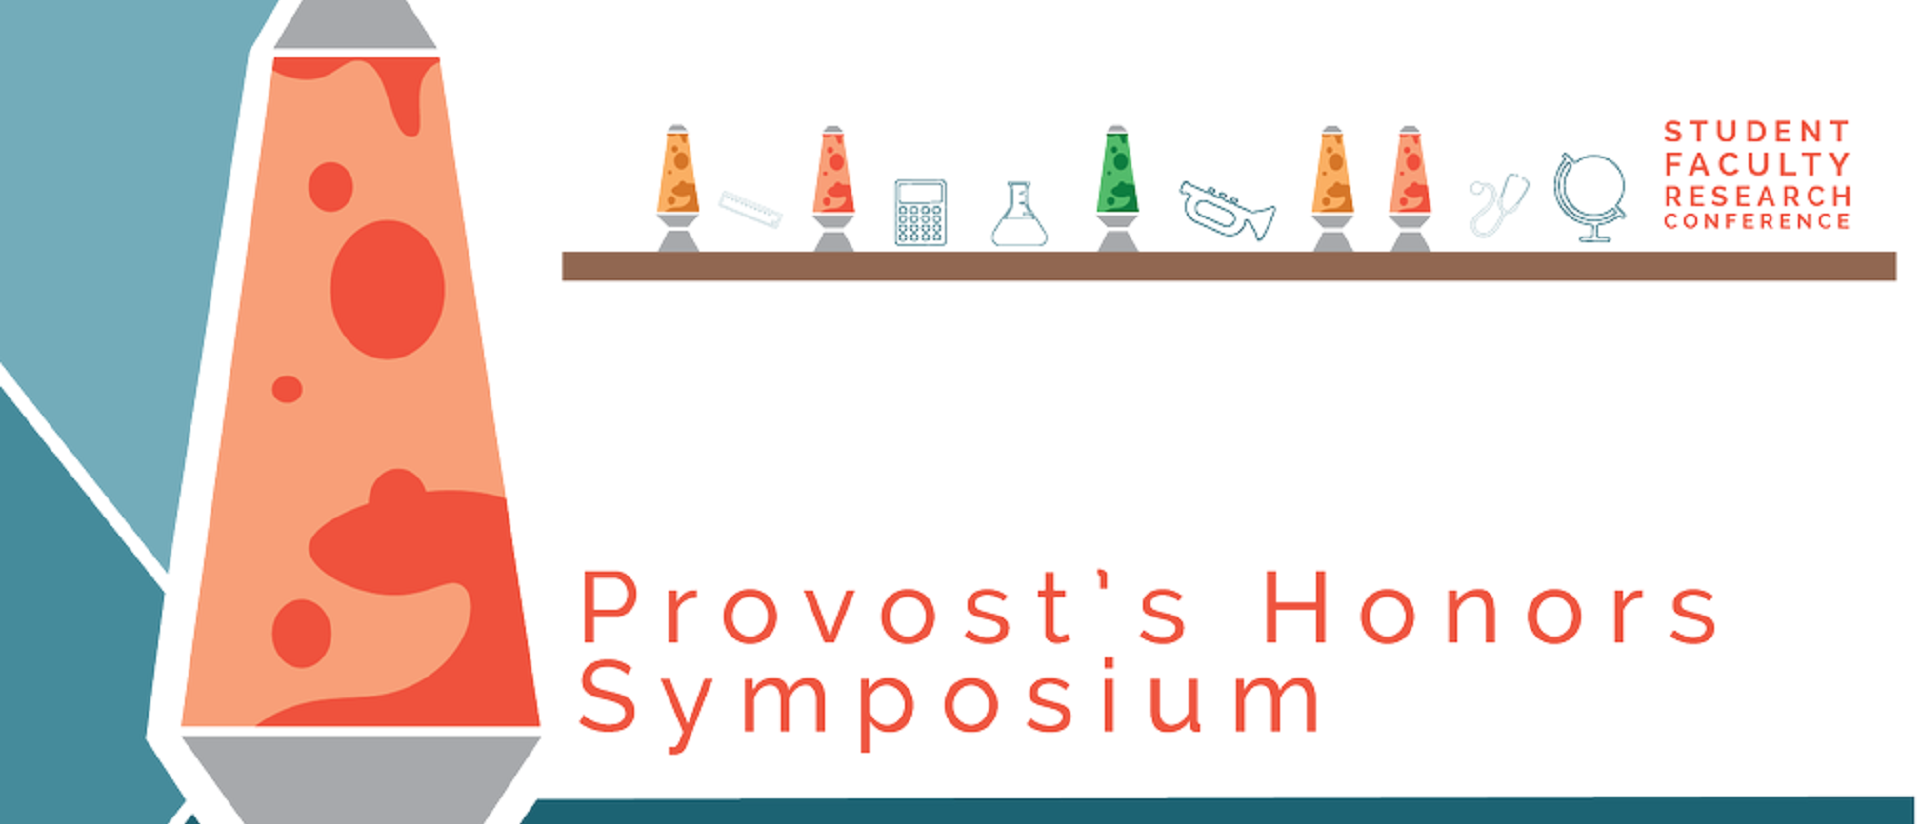 Provost's Honors Symposium